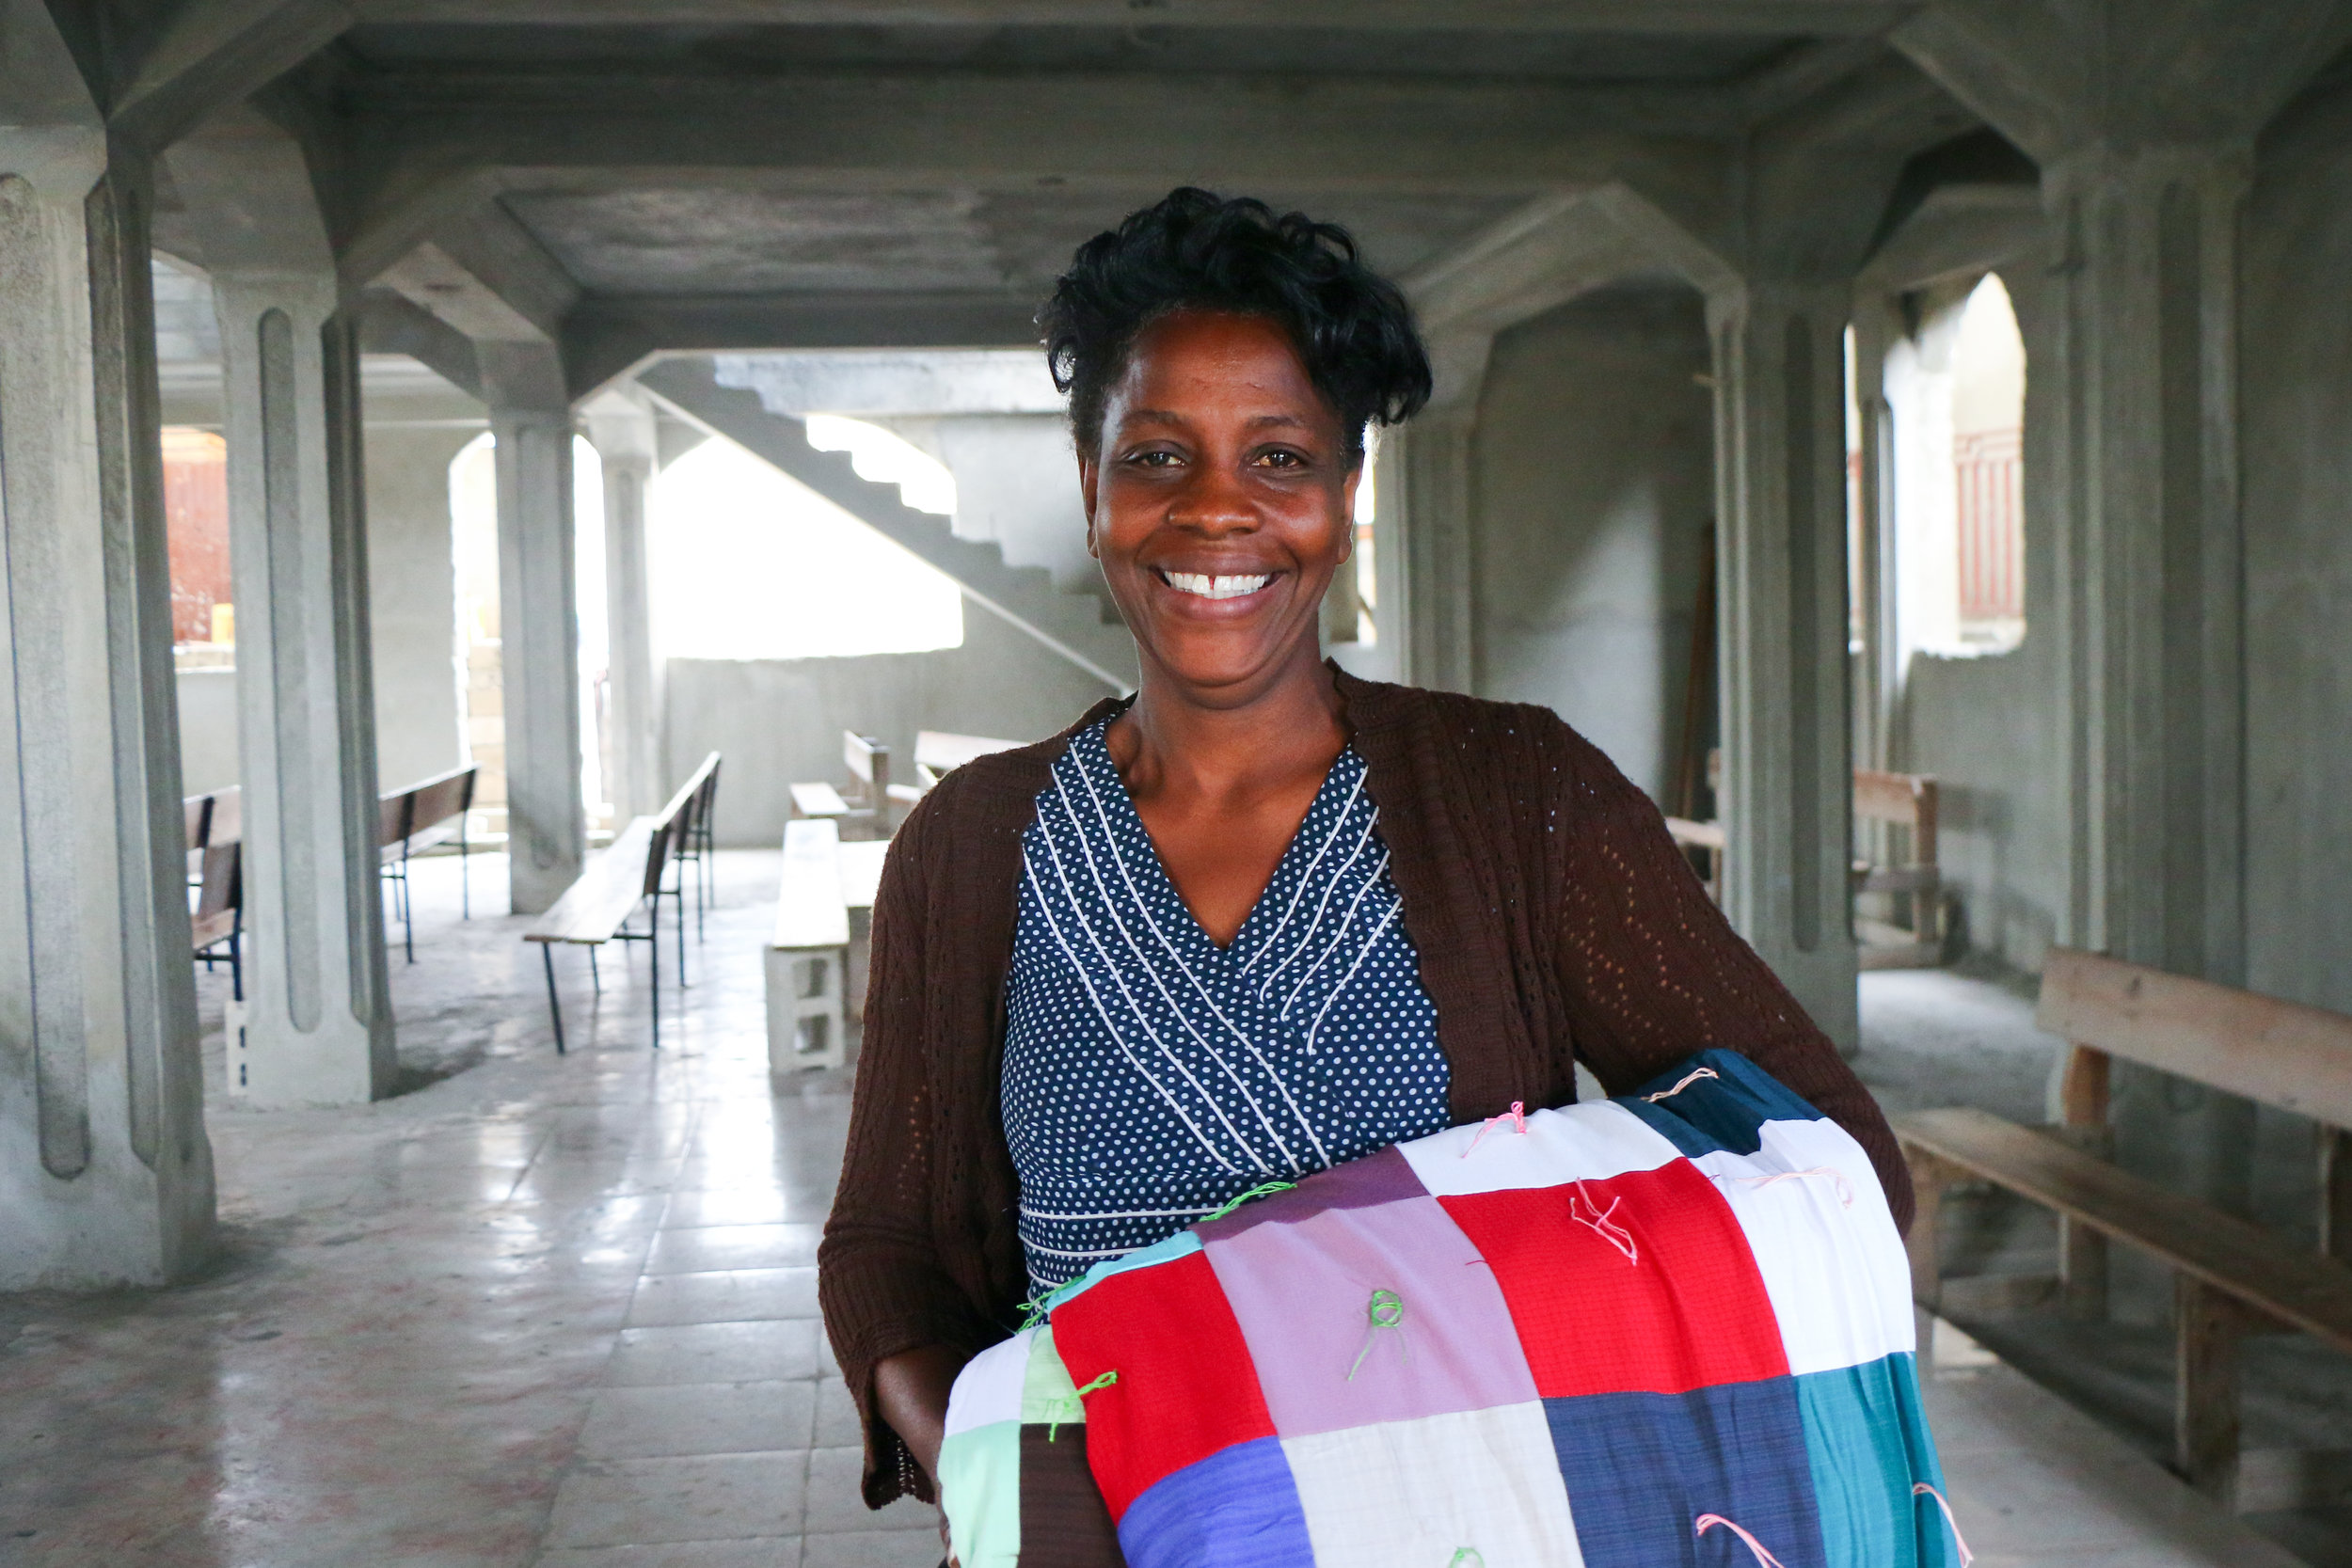 Rosemonde Joseph receives a relief bucket and comforter as part of an MCC distribution in response to the fire in the Boulard neighborhood of Port-au-Prince.